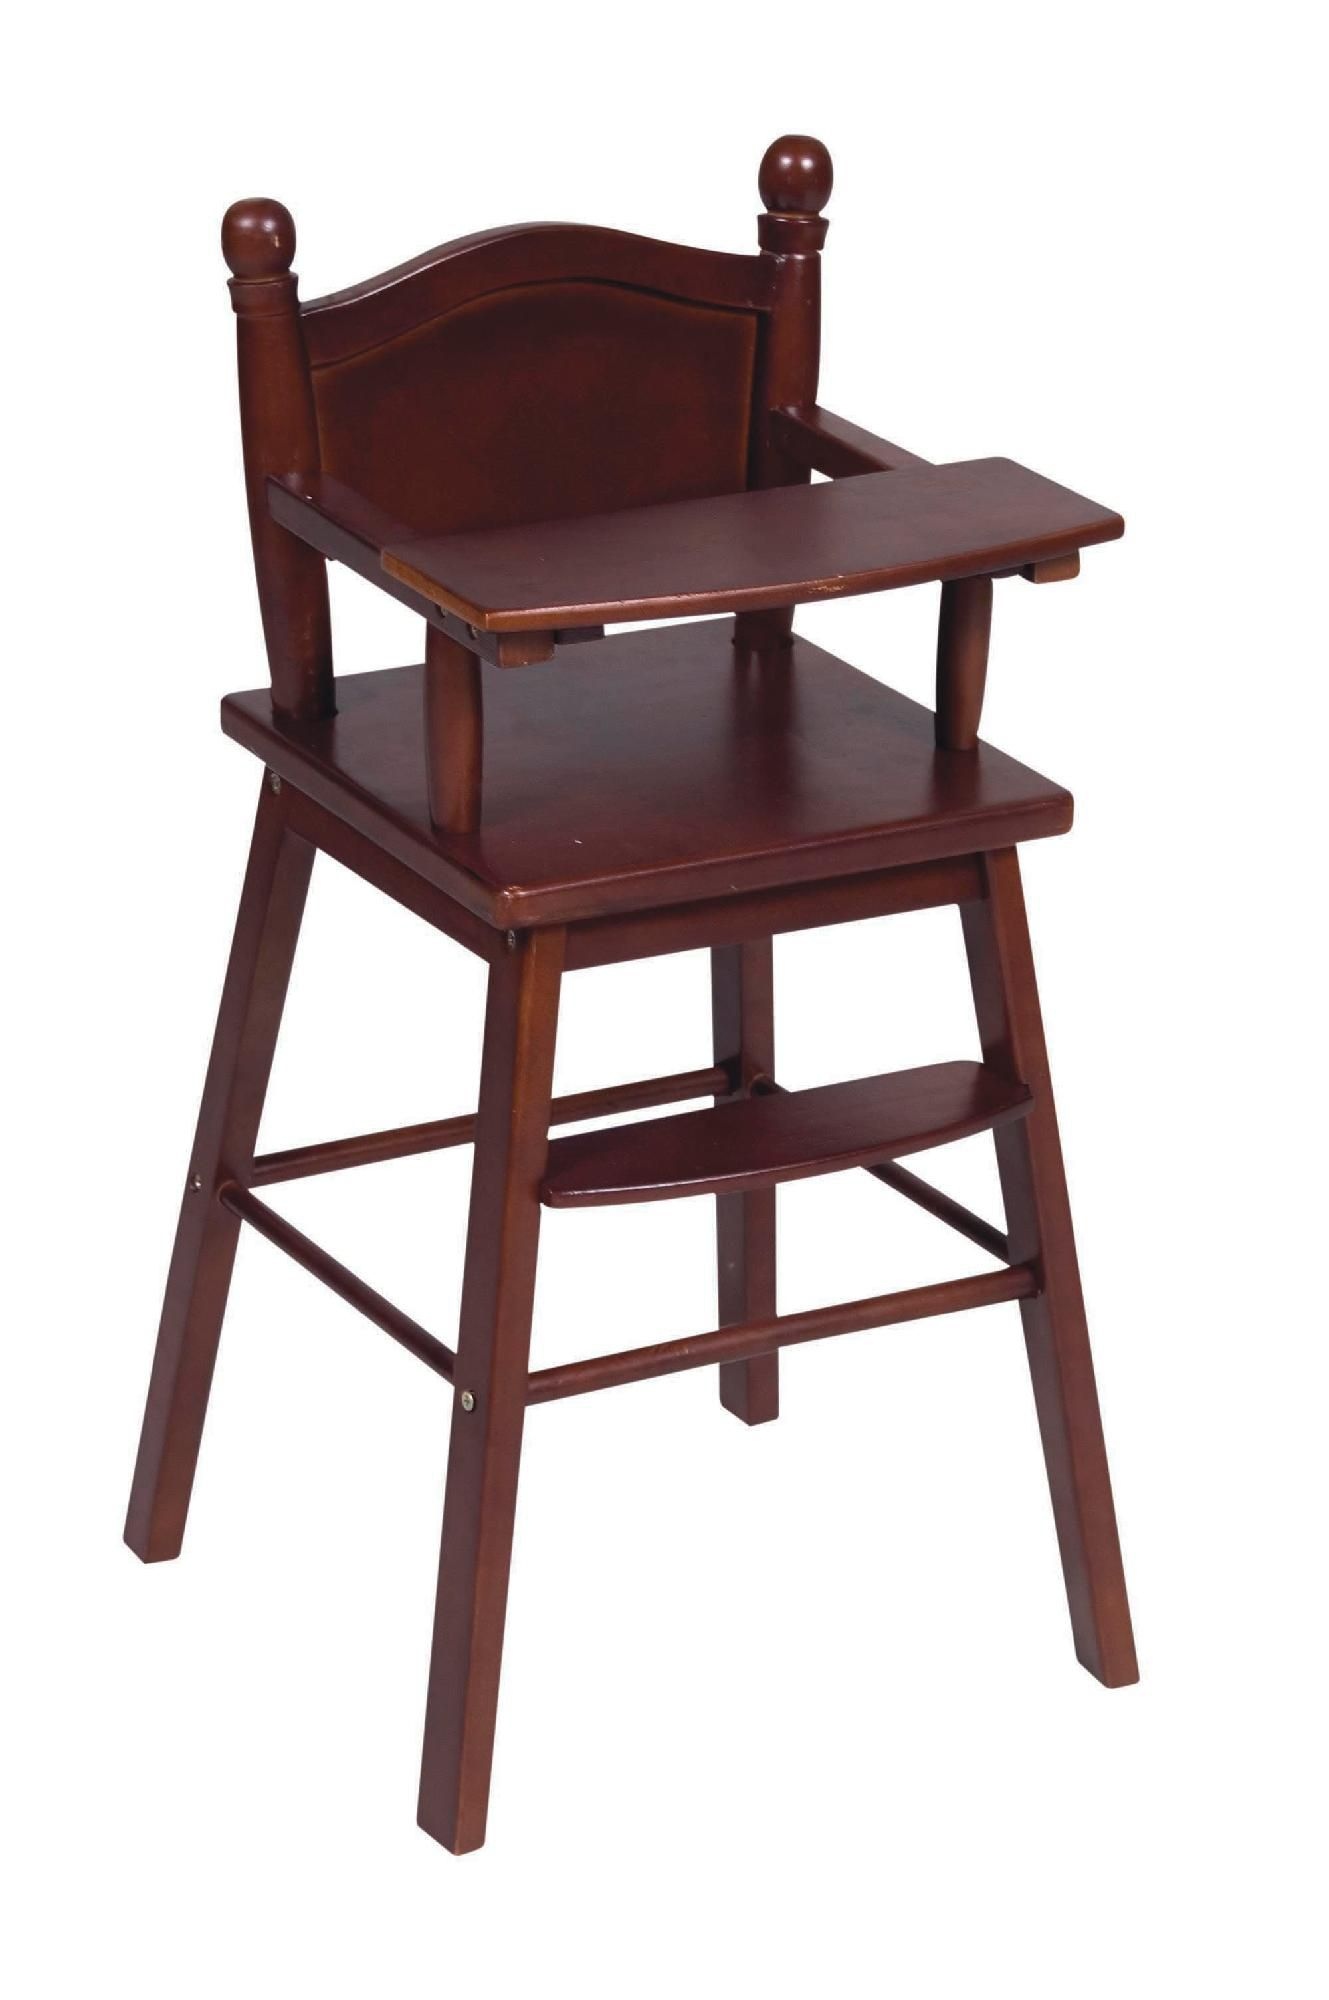 Badger High Chair Badger High Chair On Shoppinder